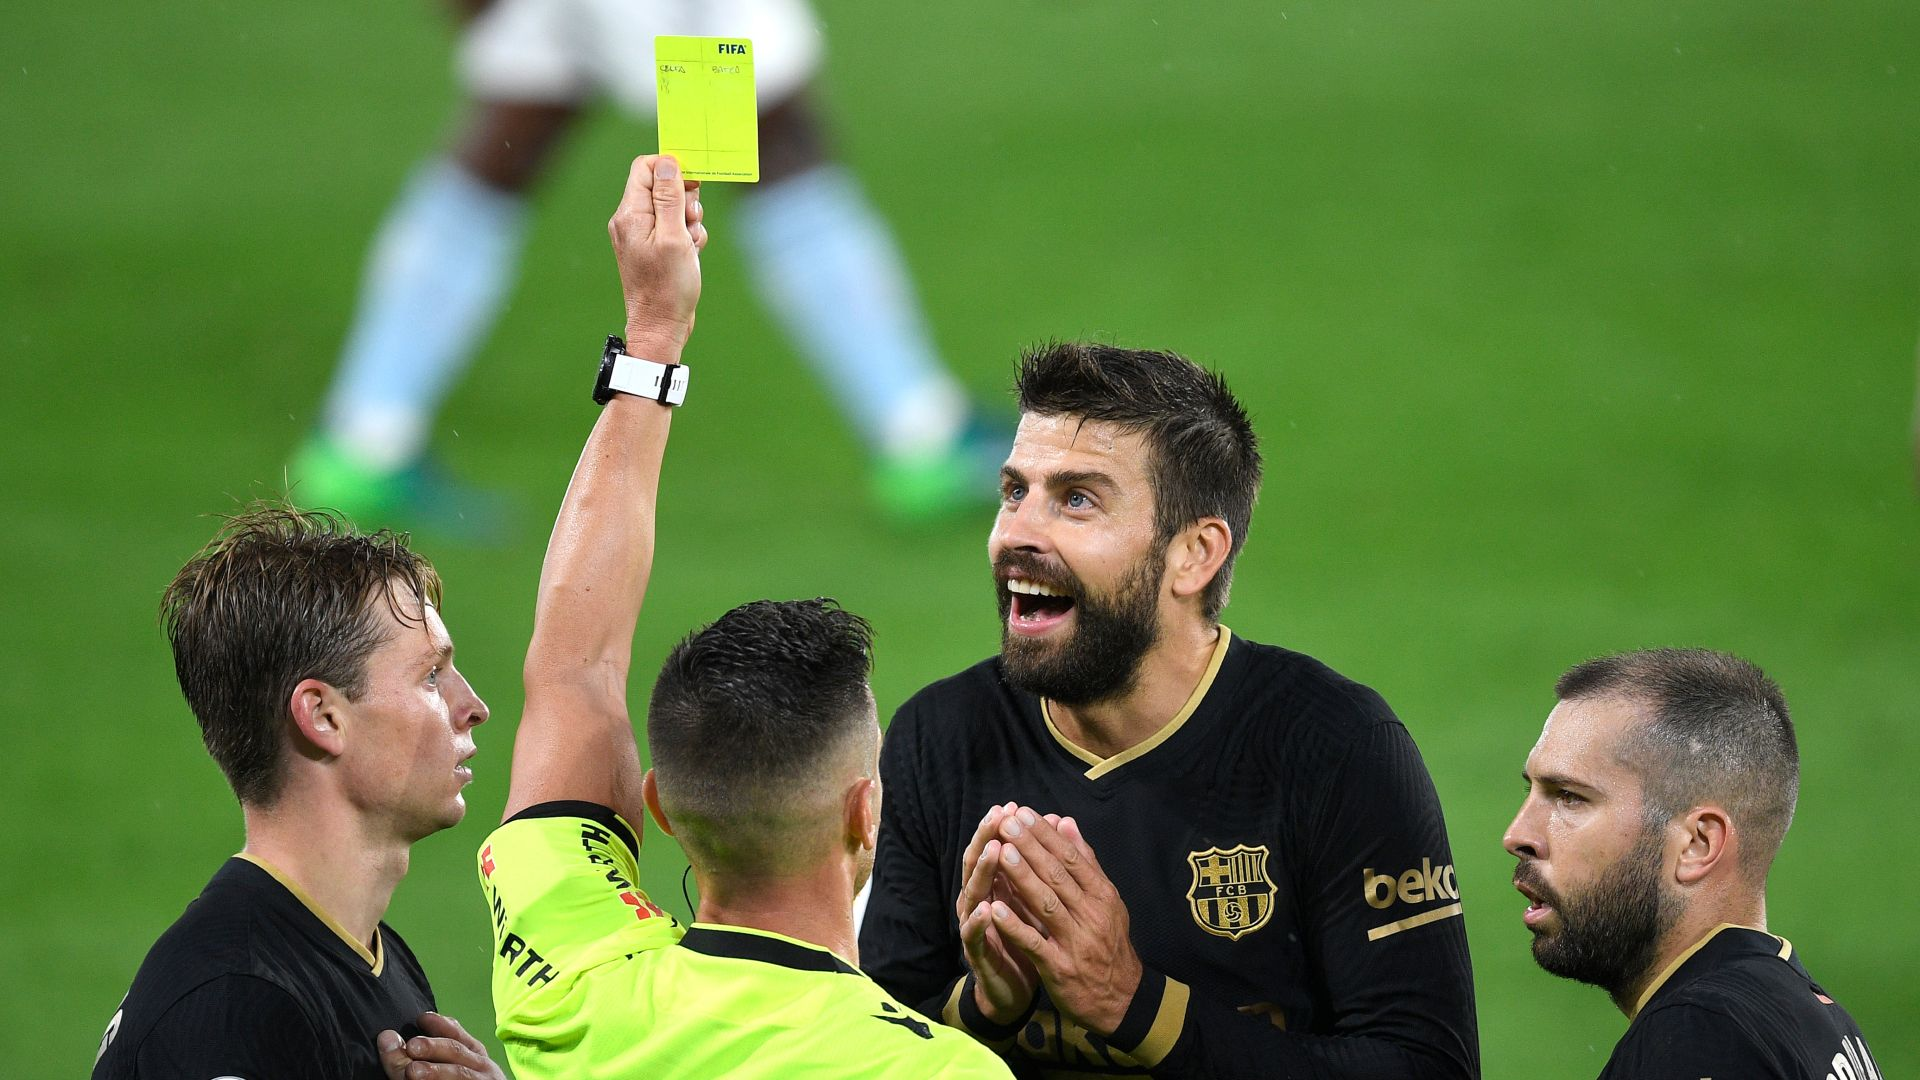 Pique: Most referees are close to Real Madrid